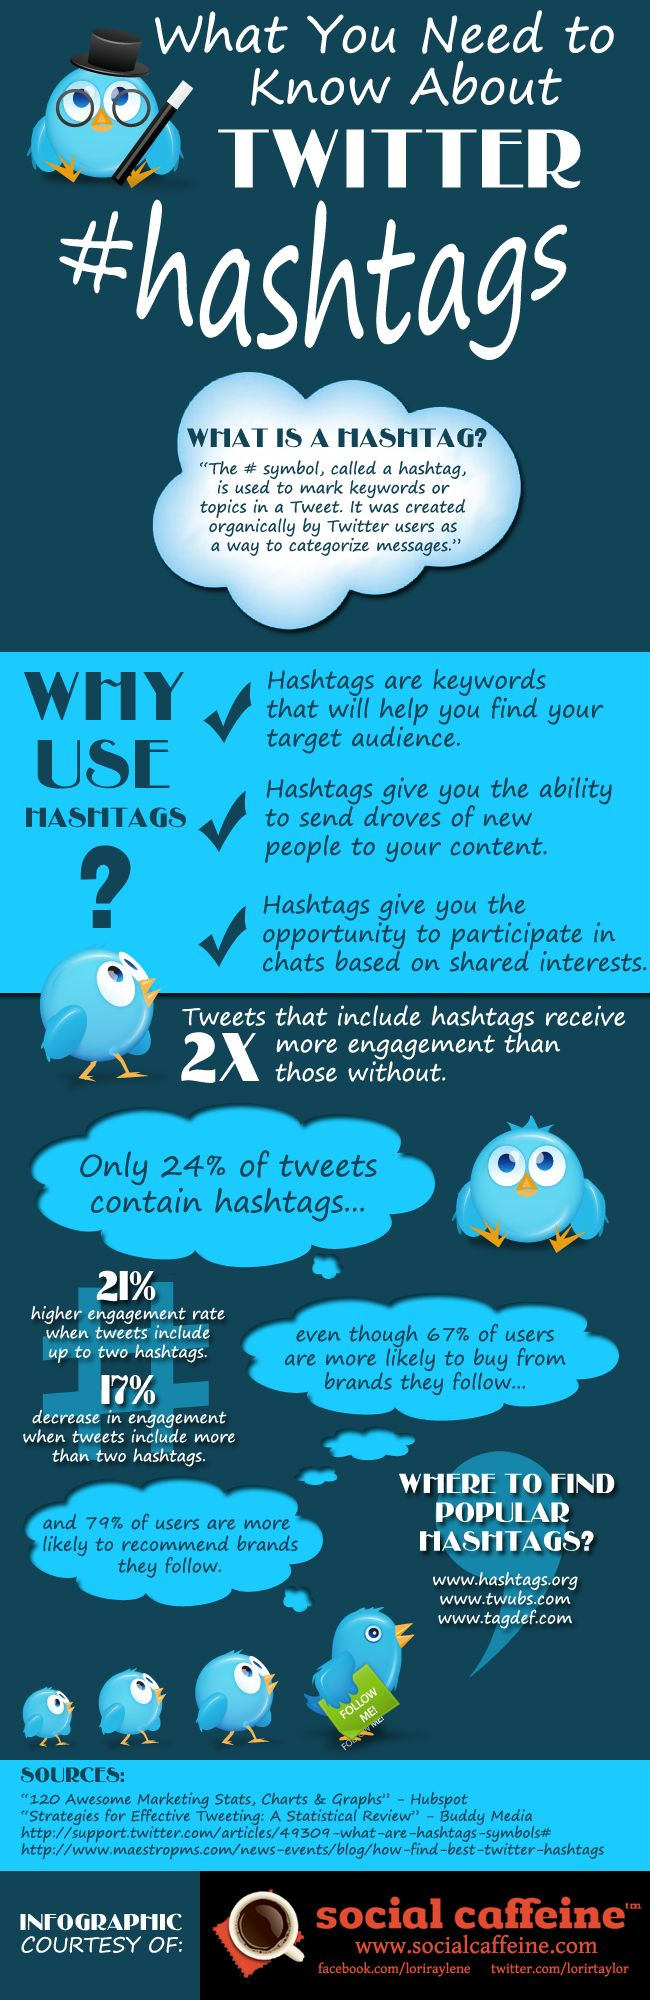 What You Need to Know About Twitter Hashtags (Infographic)